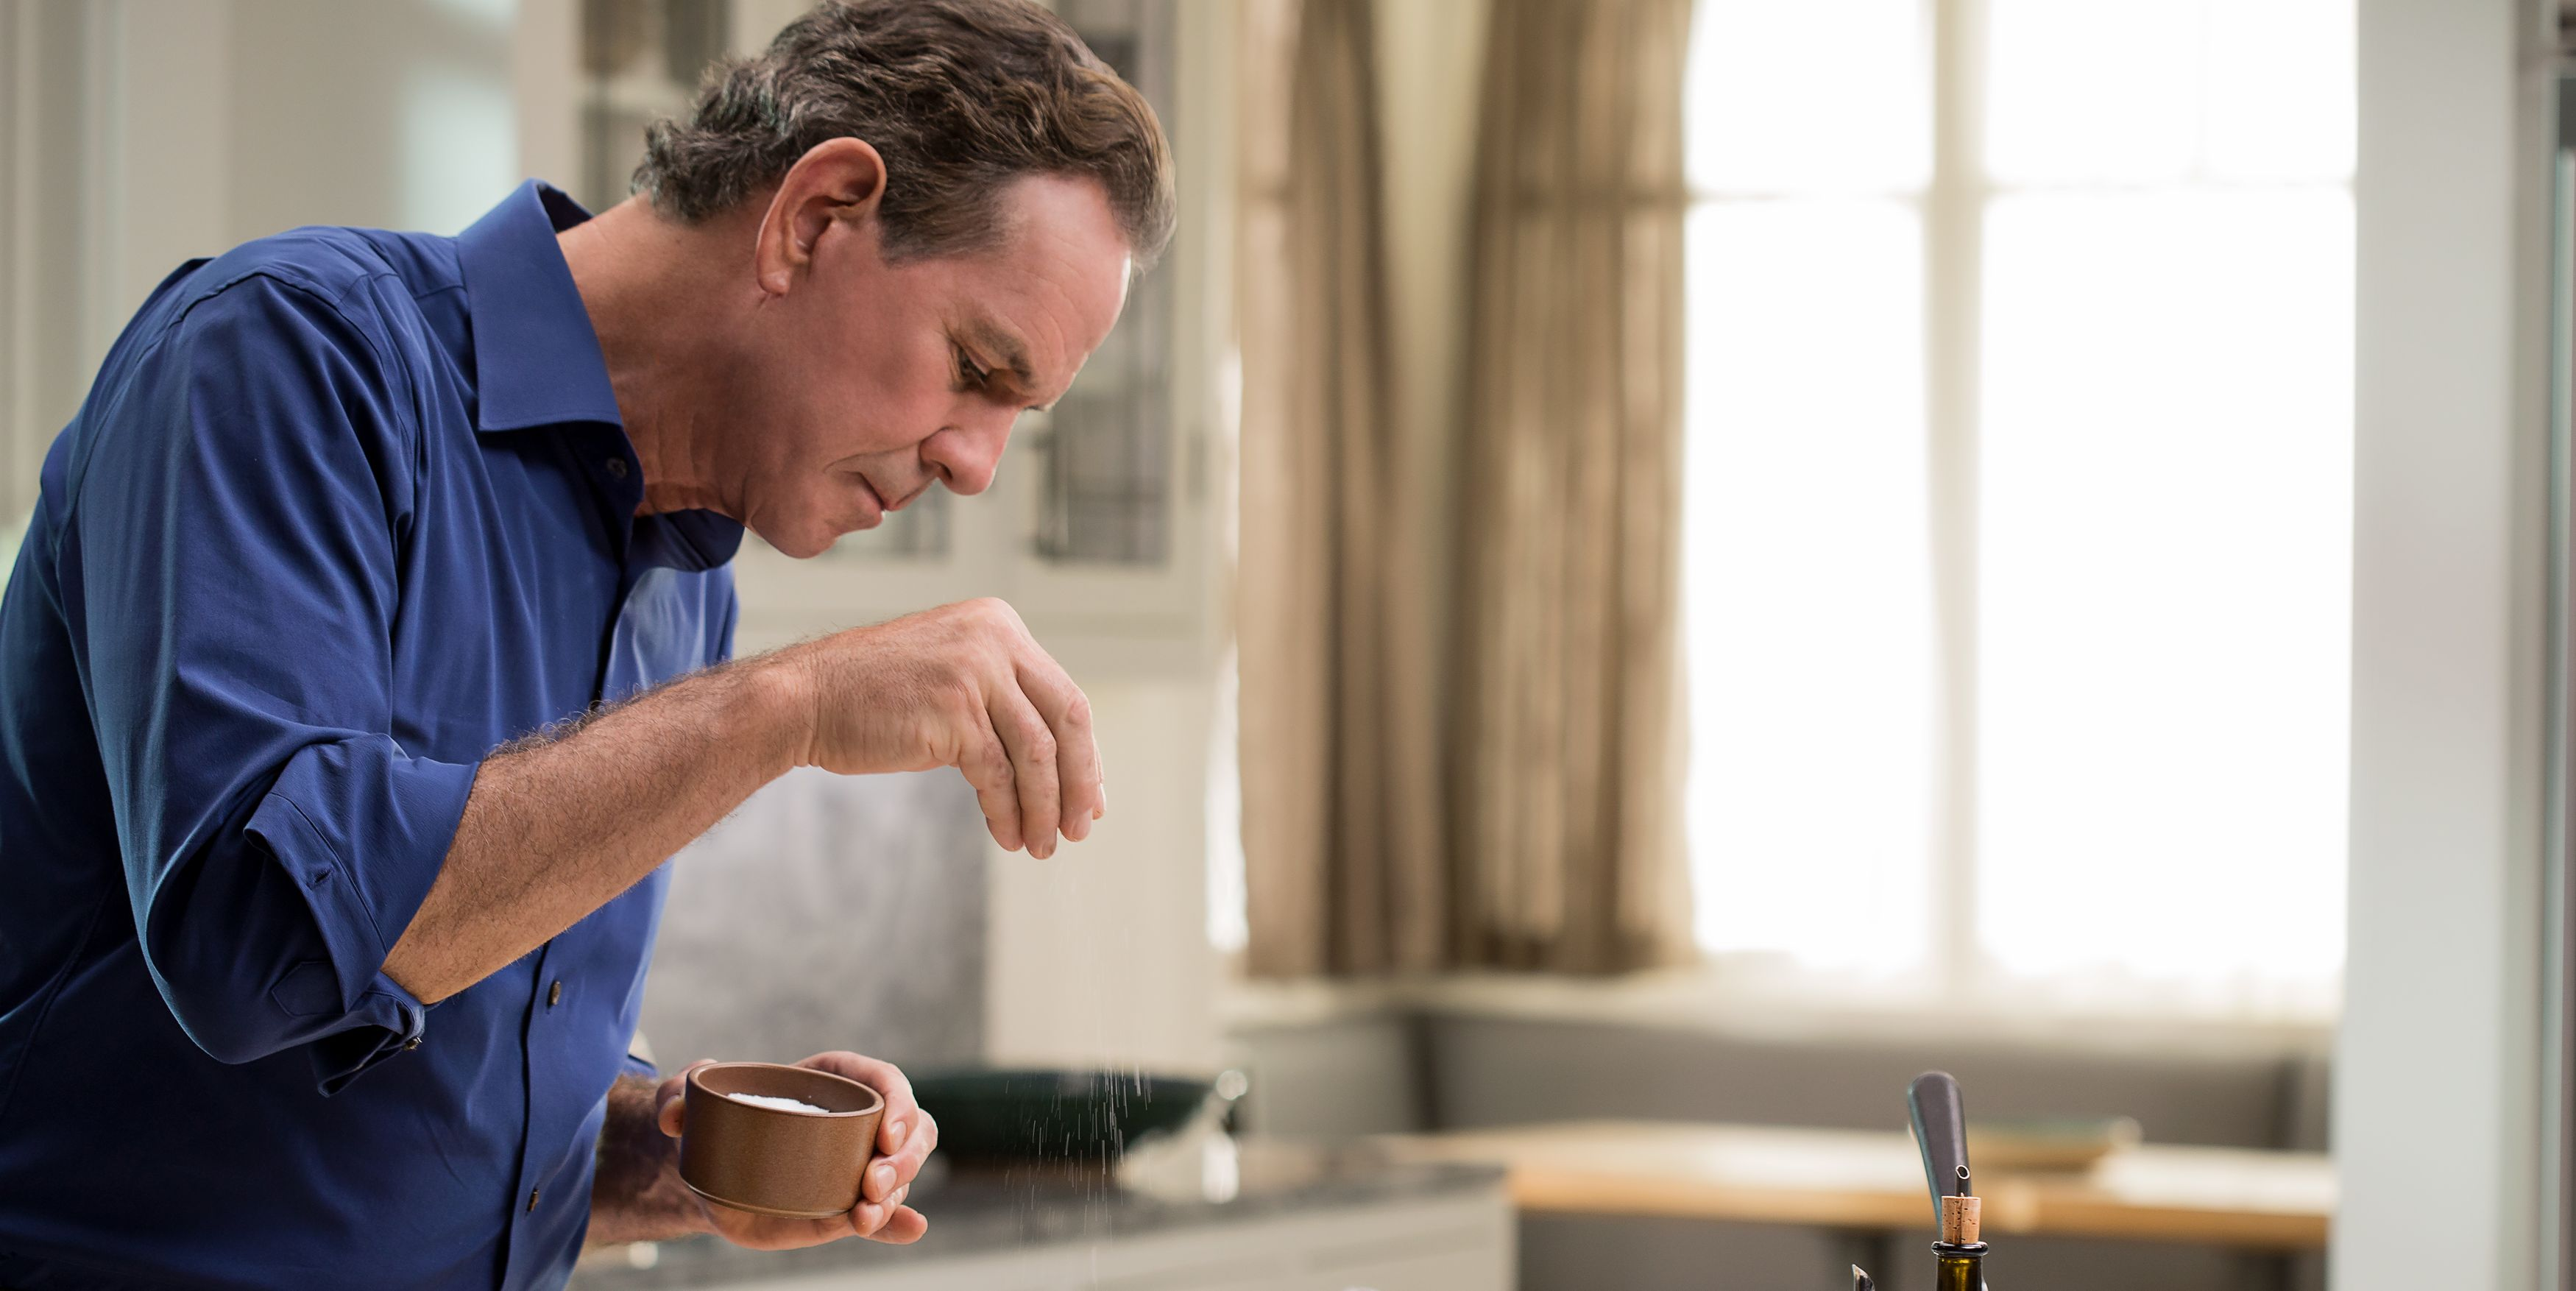 Thomas Keller Reveals the Common Kitchen Tool You Should Never Use When Cooking Duck